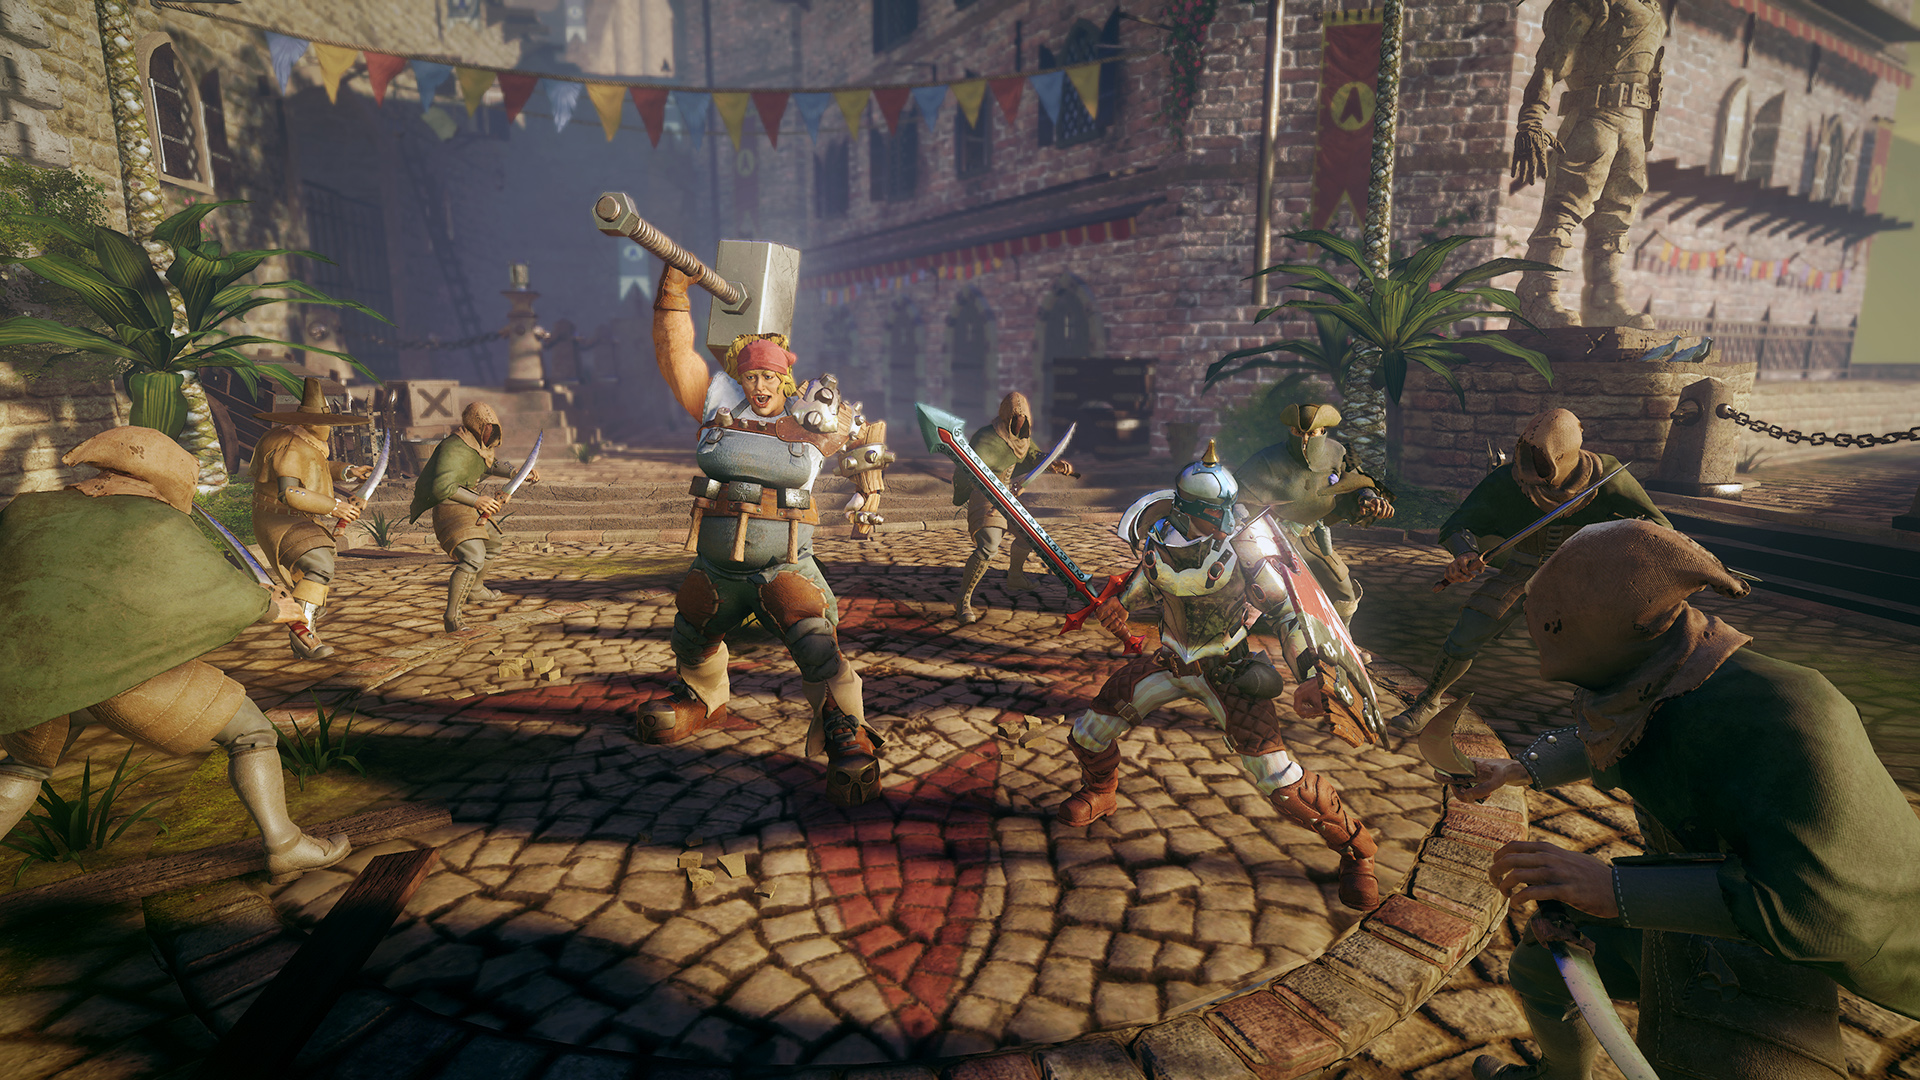 Hand of Fate 2 has a release date, and it's looking like a big step forward